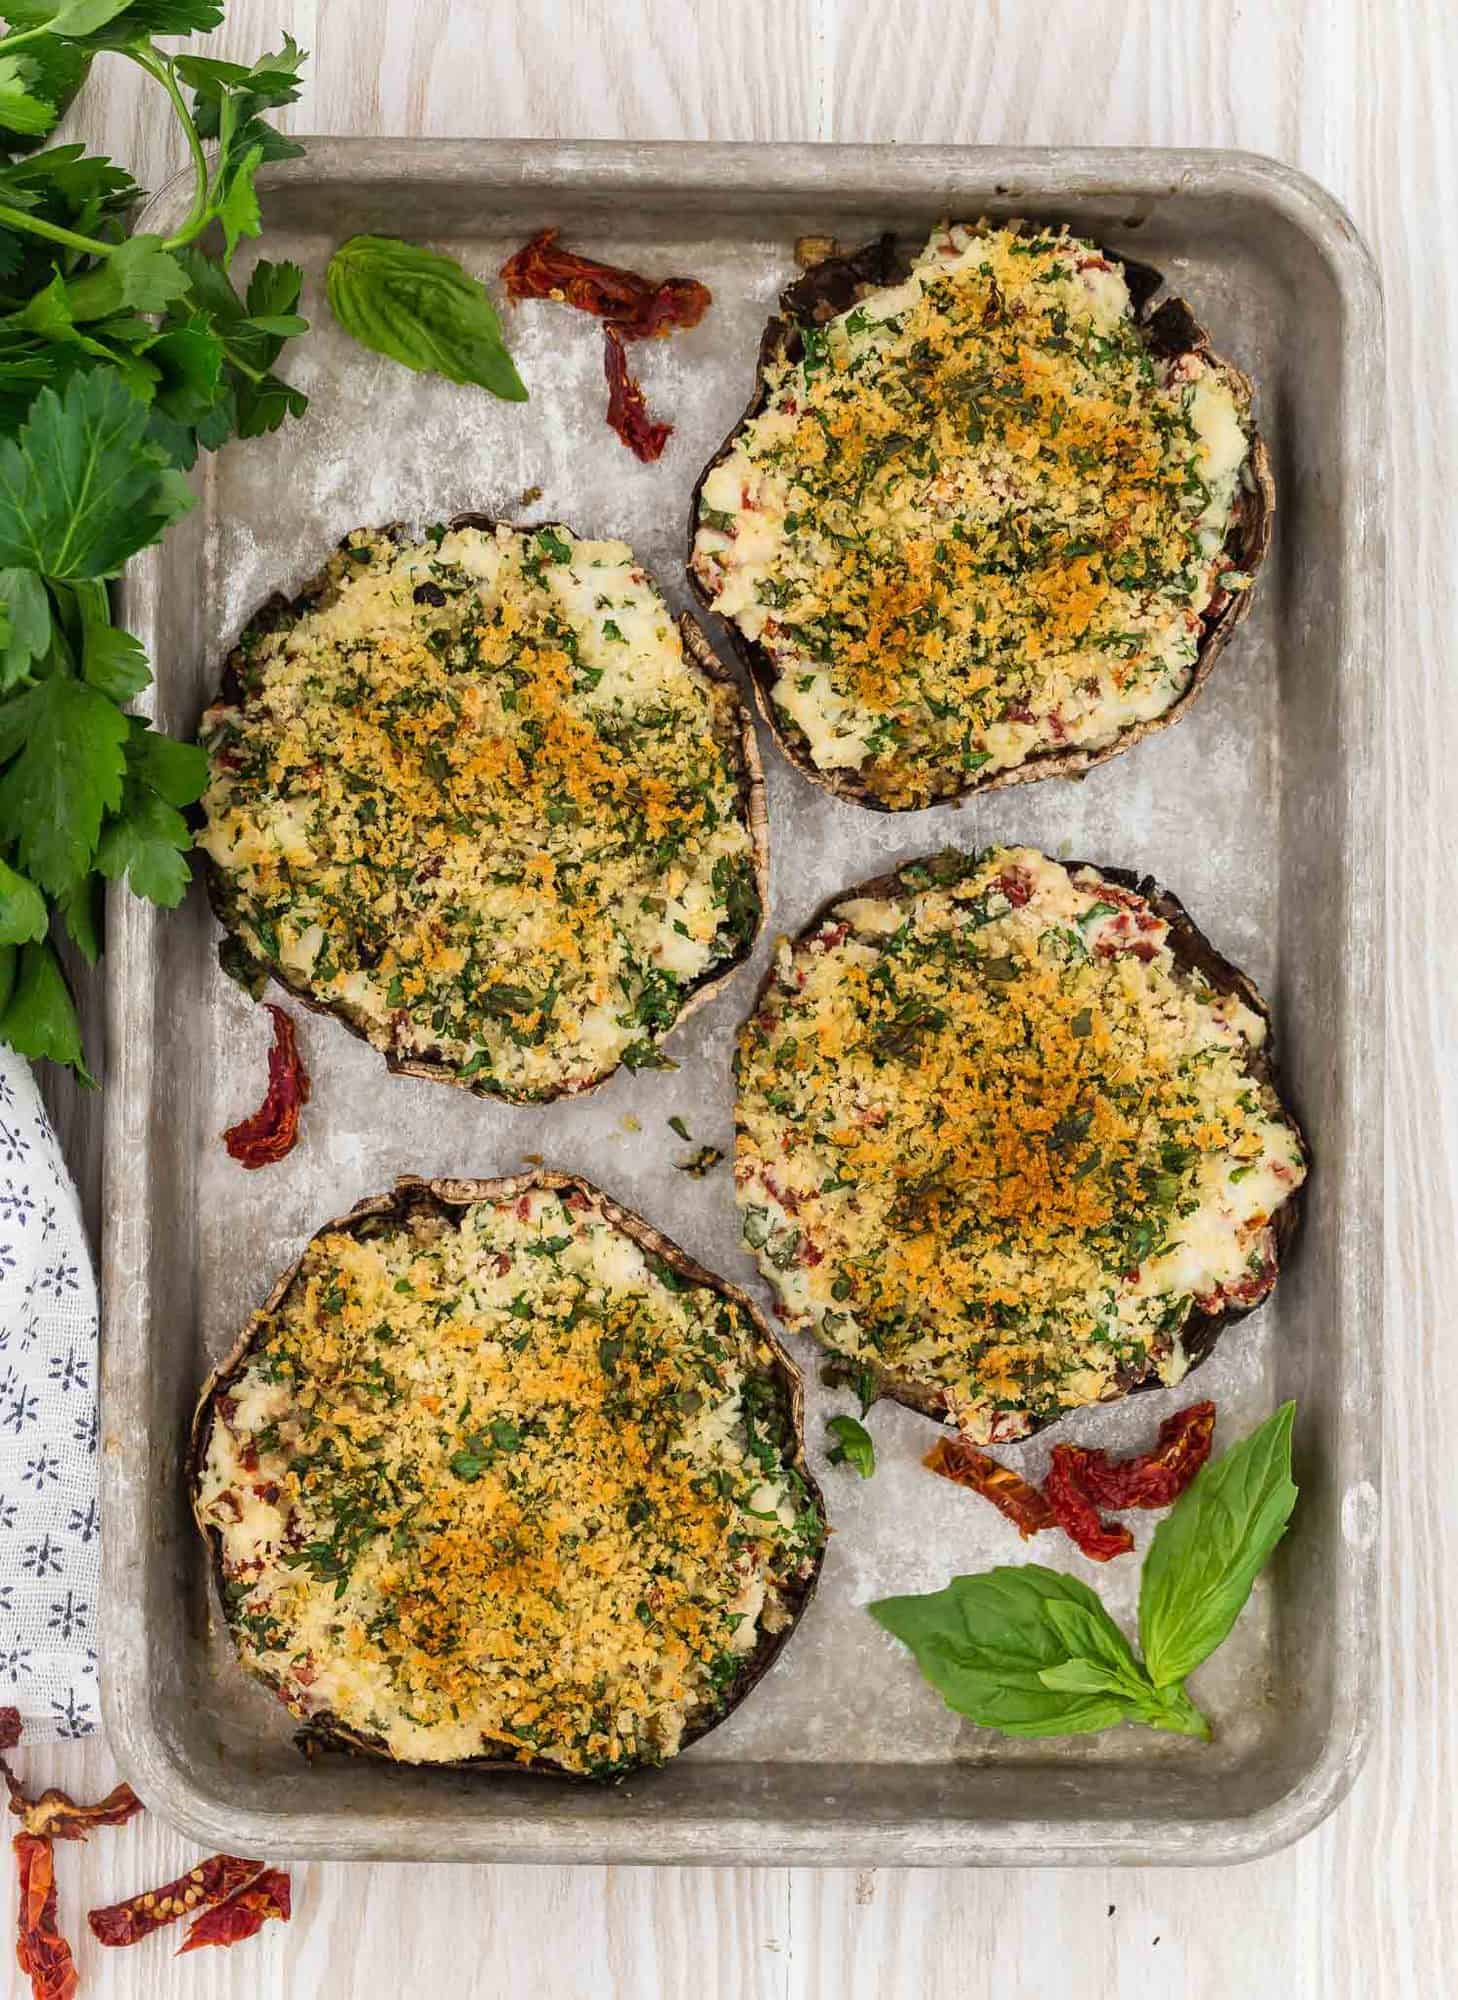 Overhead view of 4 portobello mushrooms on a baking sheet, filled with stuffing and baked.